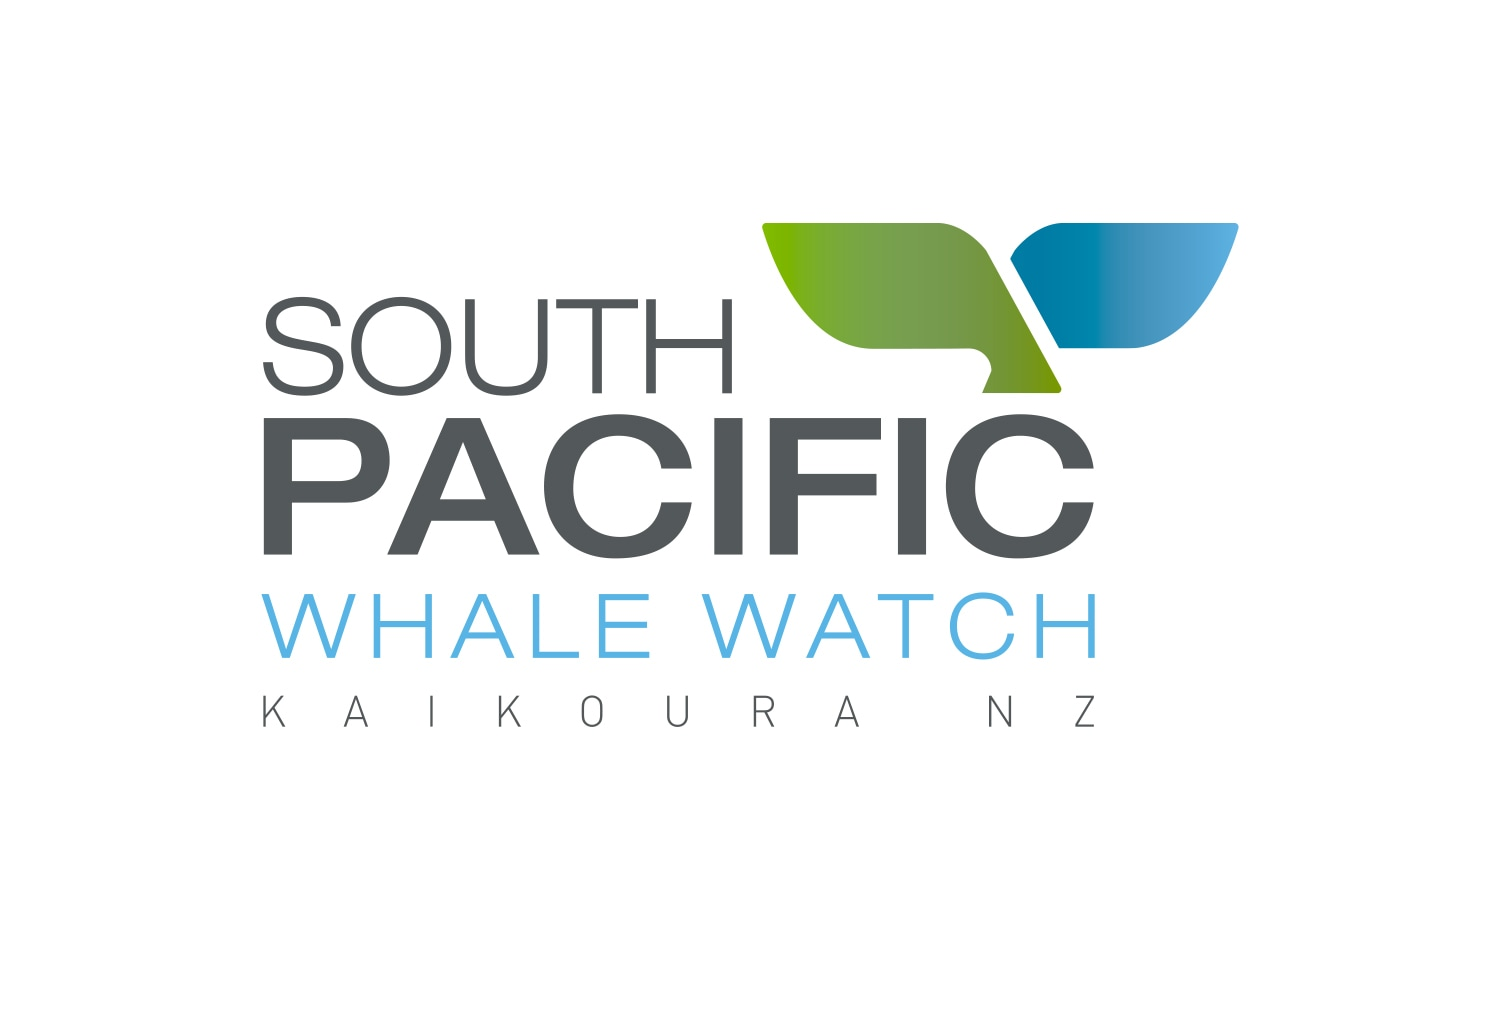 South Pacific Whale Watch